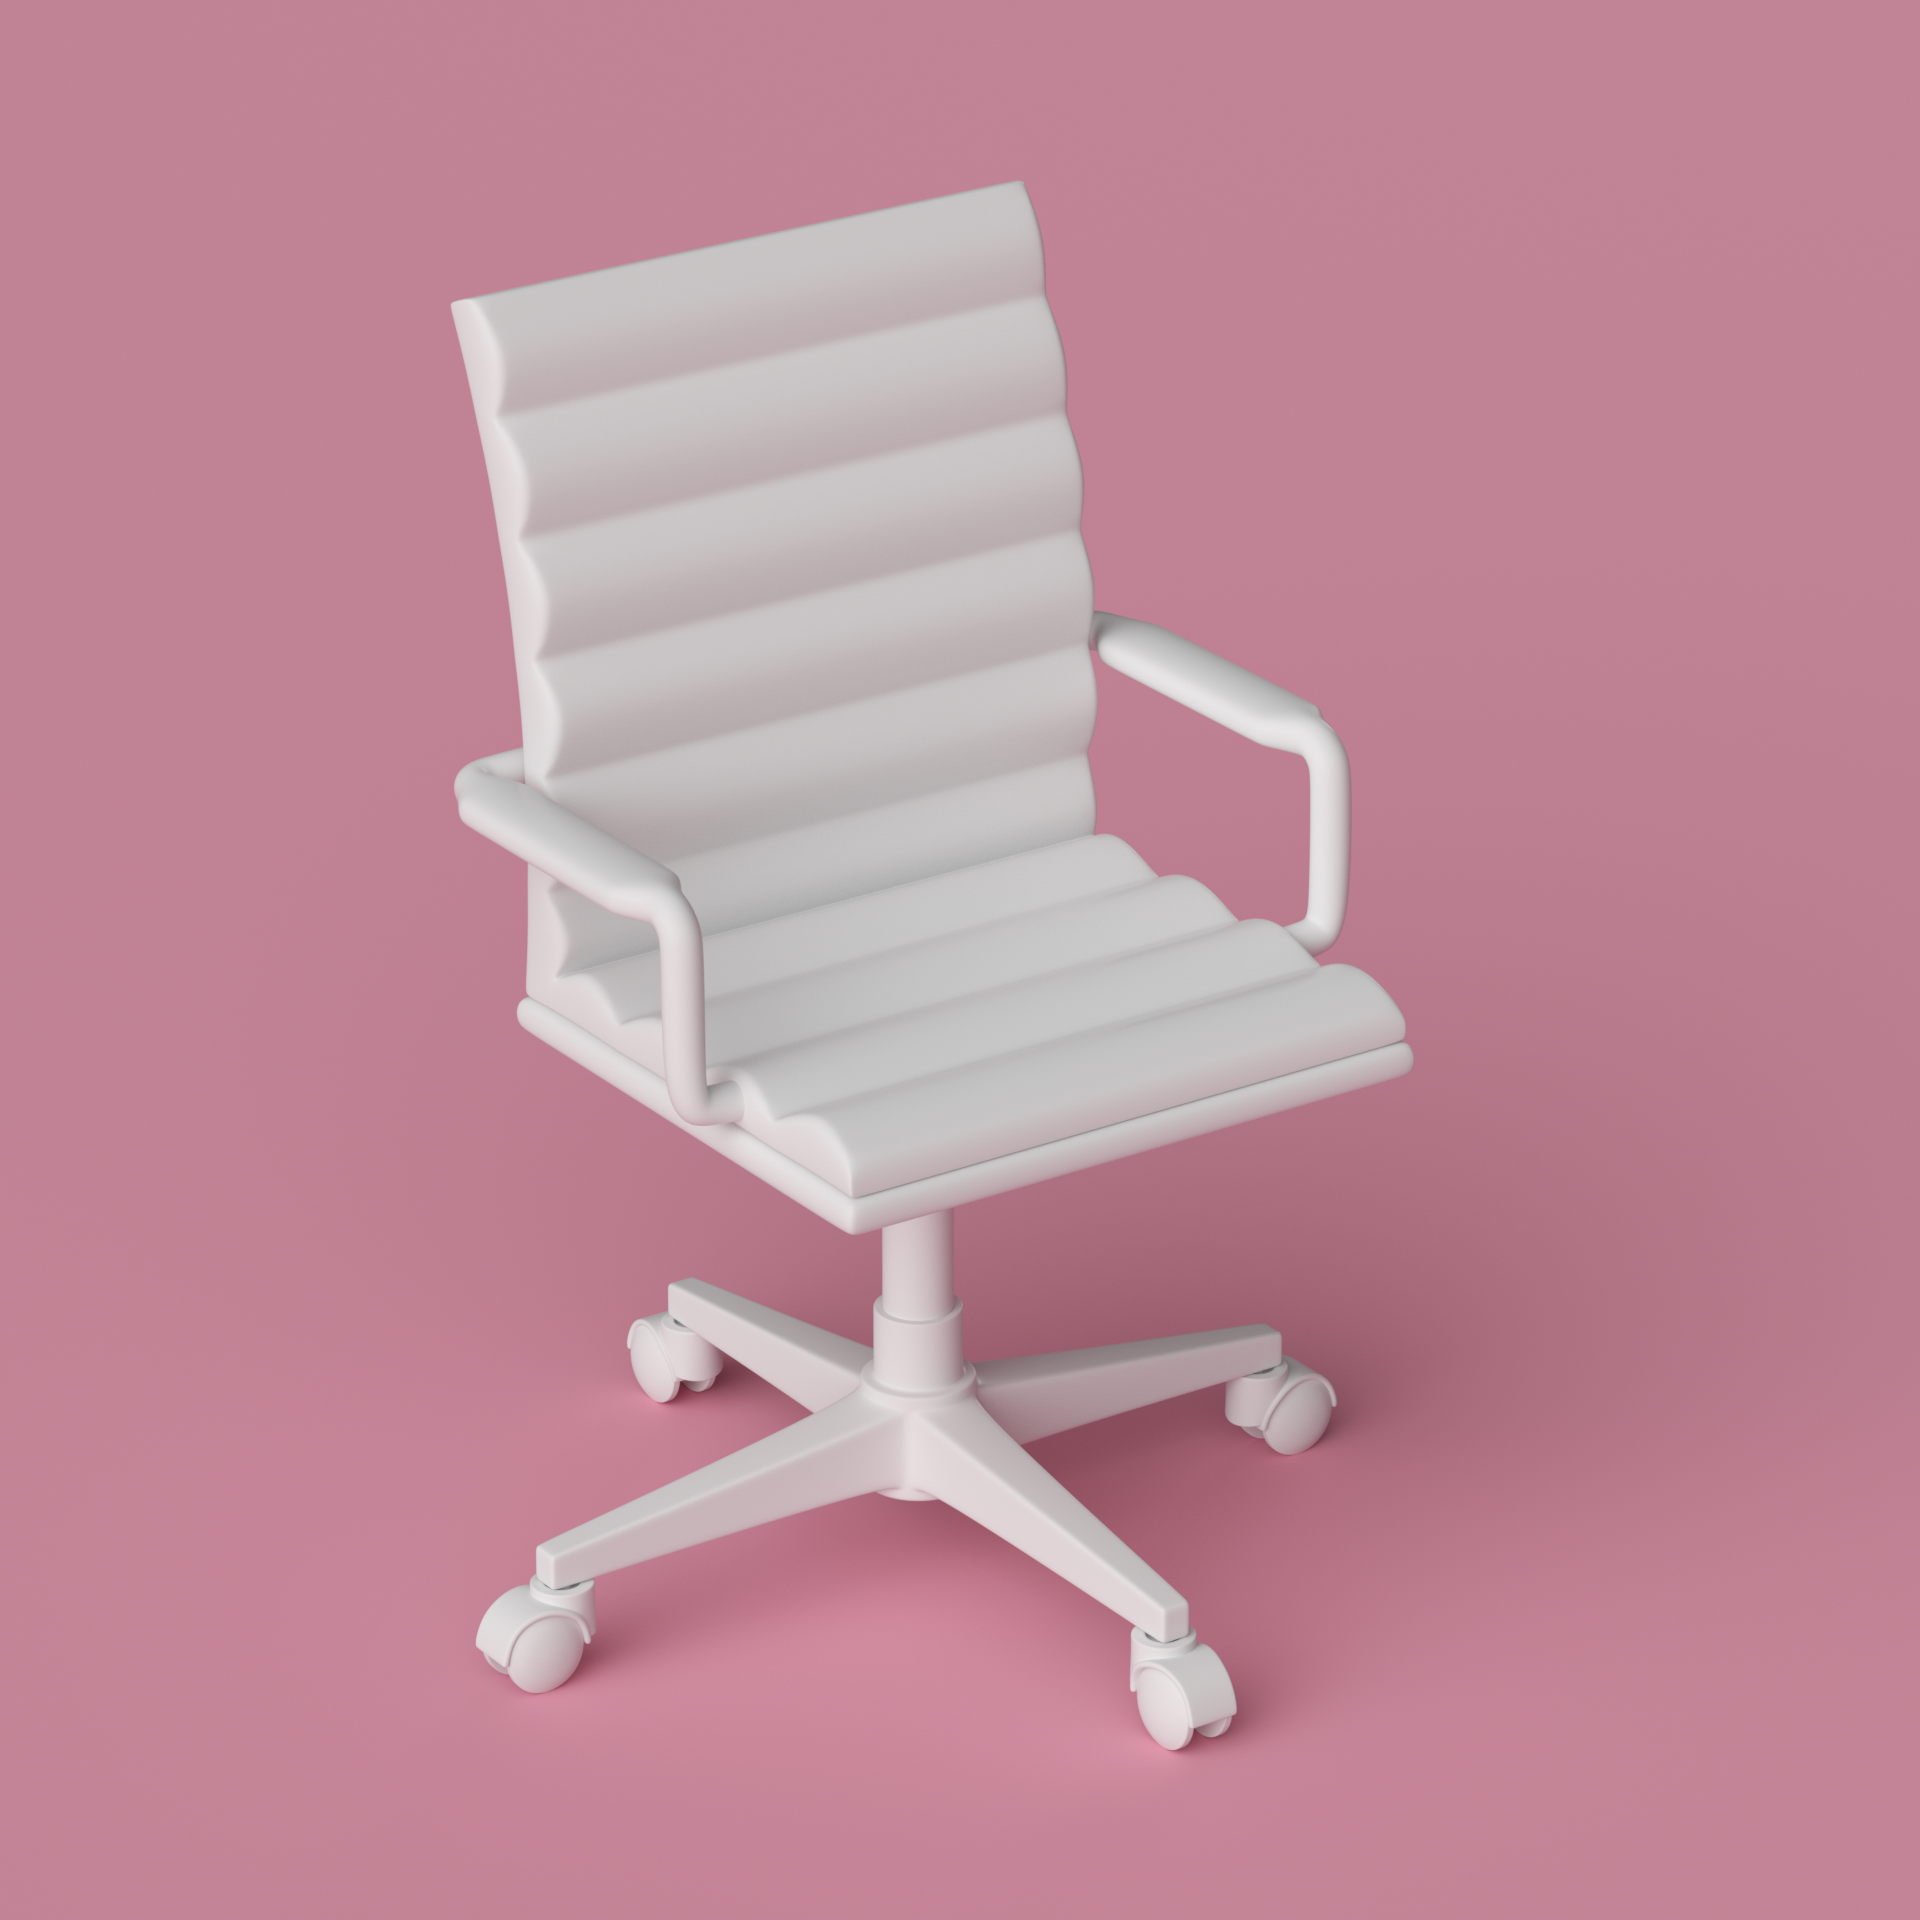 desk_chair.png